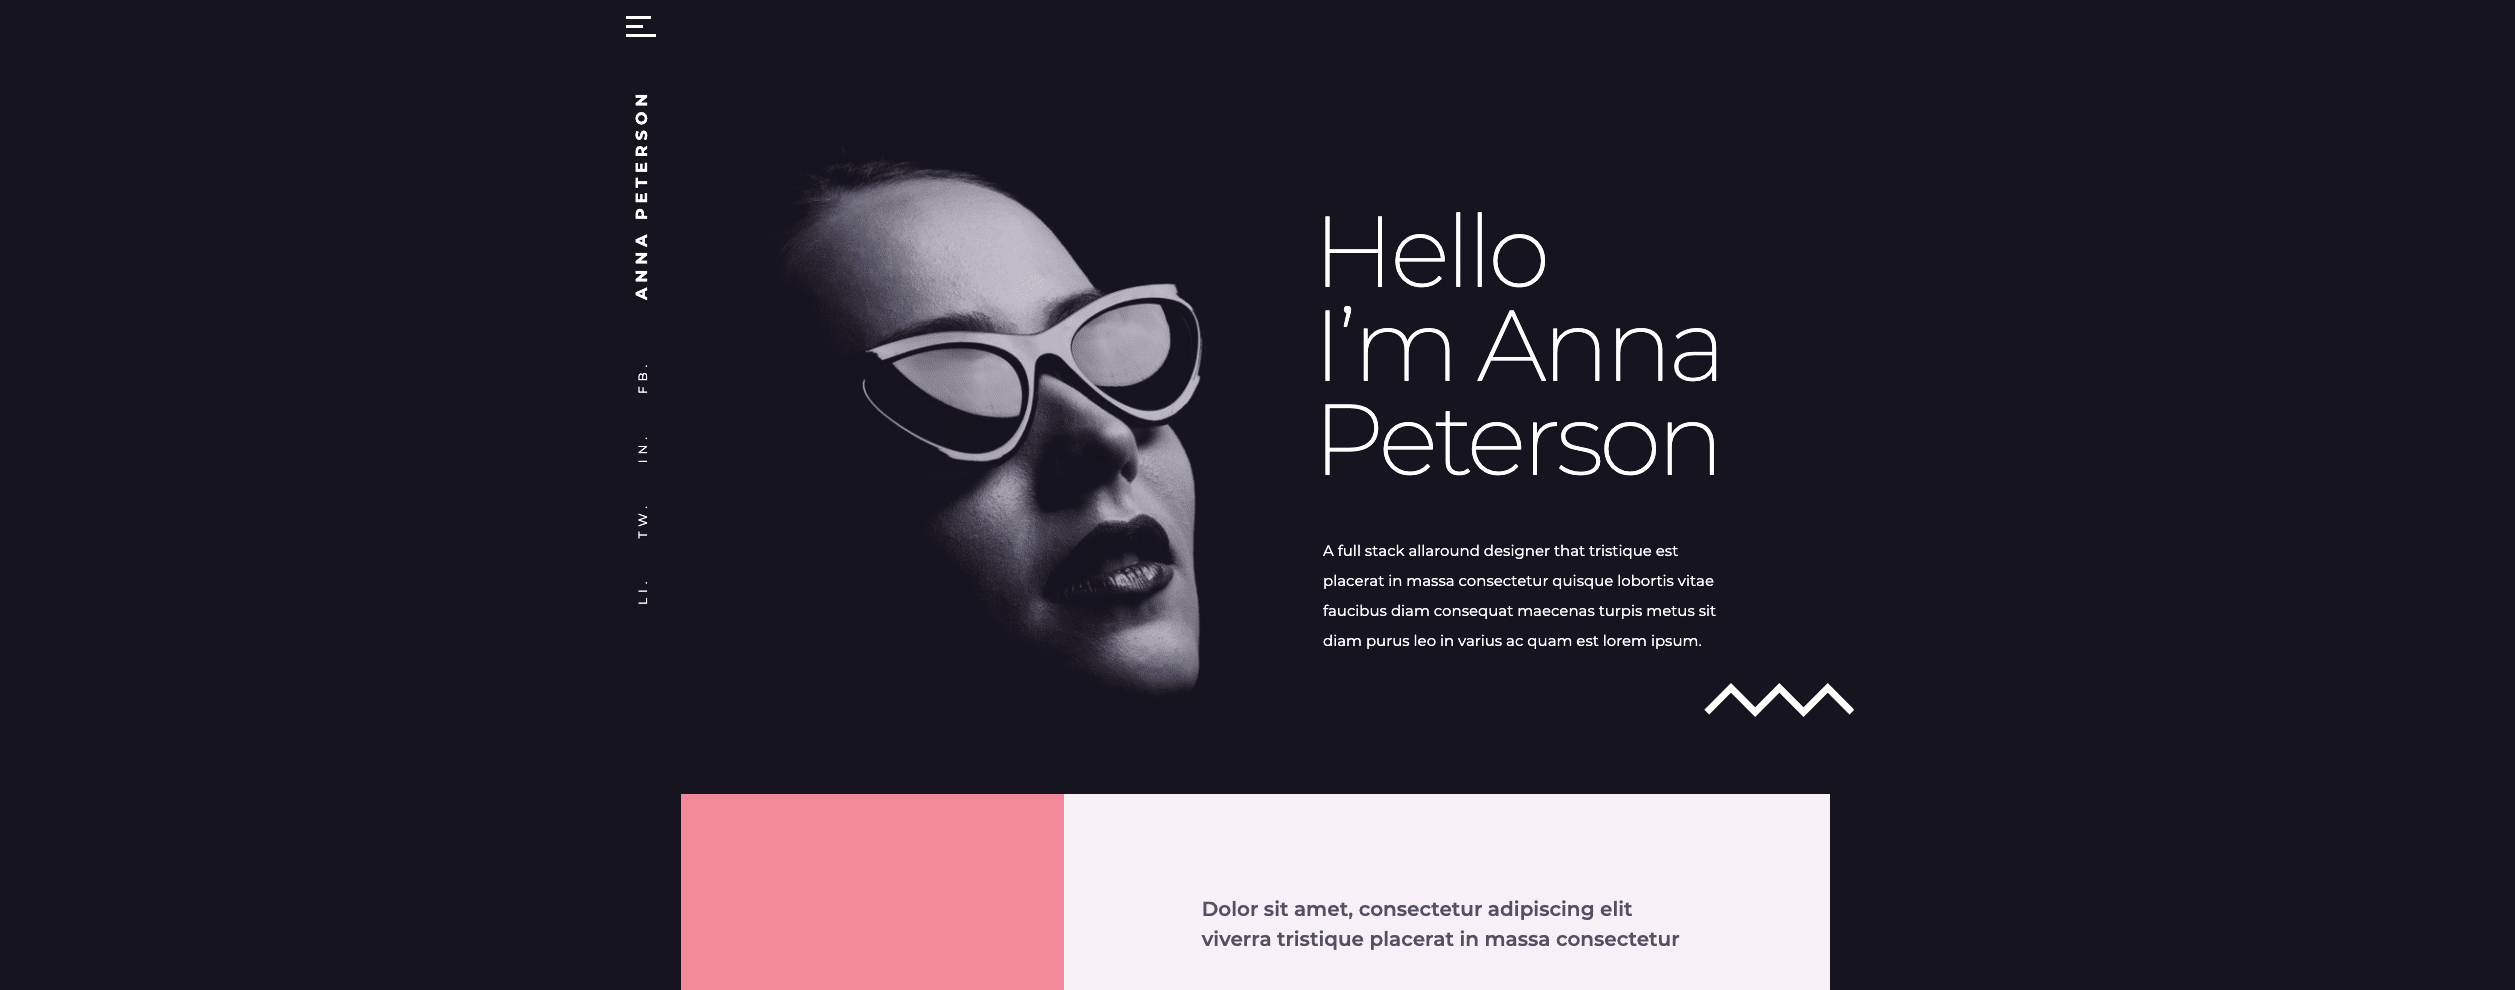 Teoro CV Resume WordPress Theme